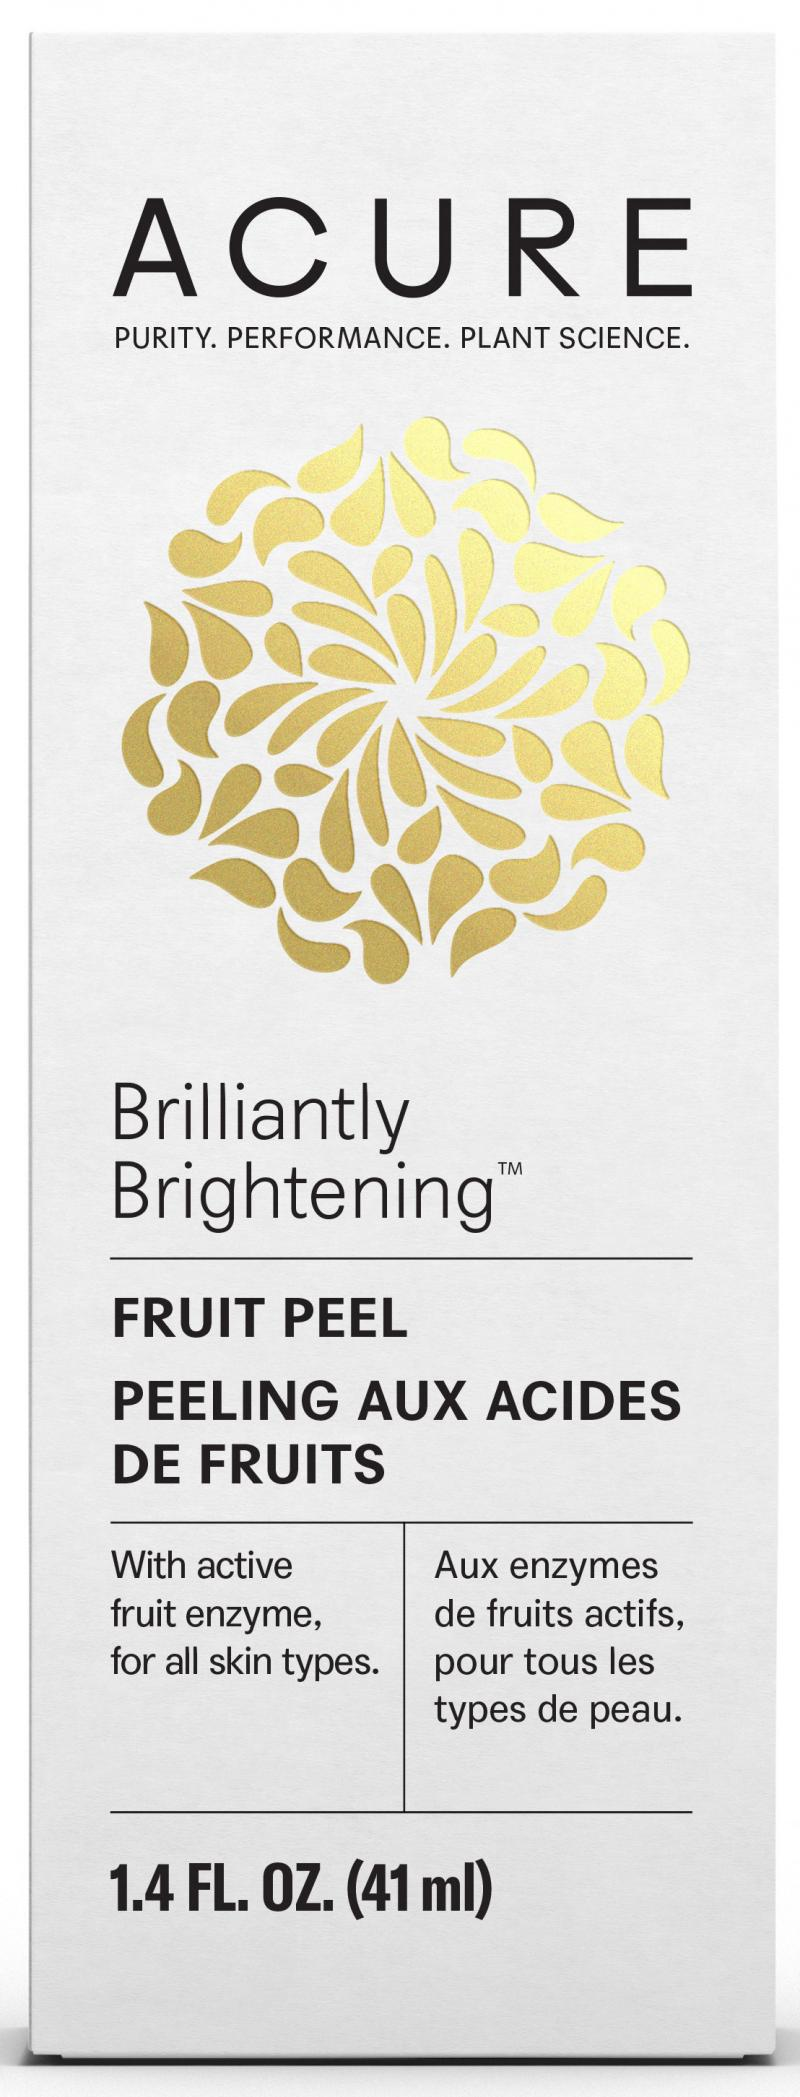 Fruit Peel With Active Fruit Enzyme, For All Skin Types.